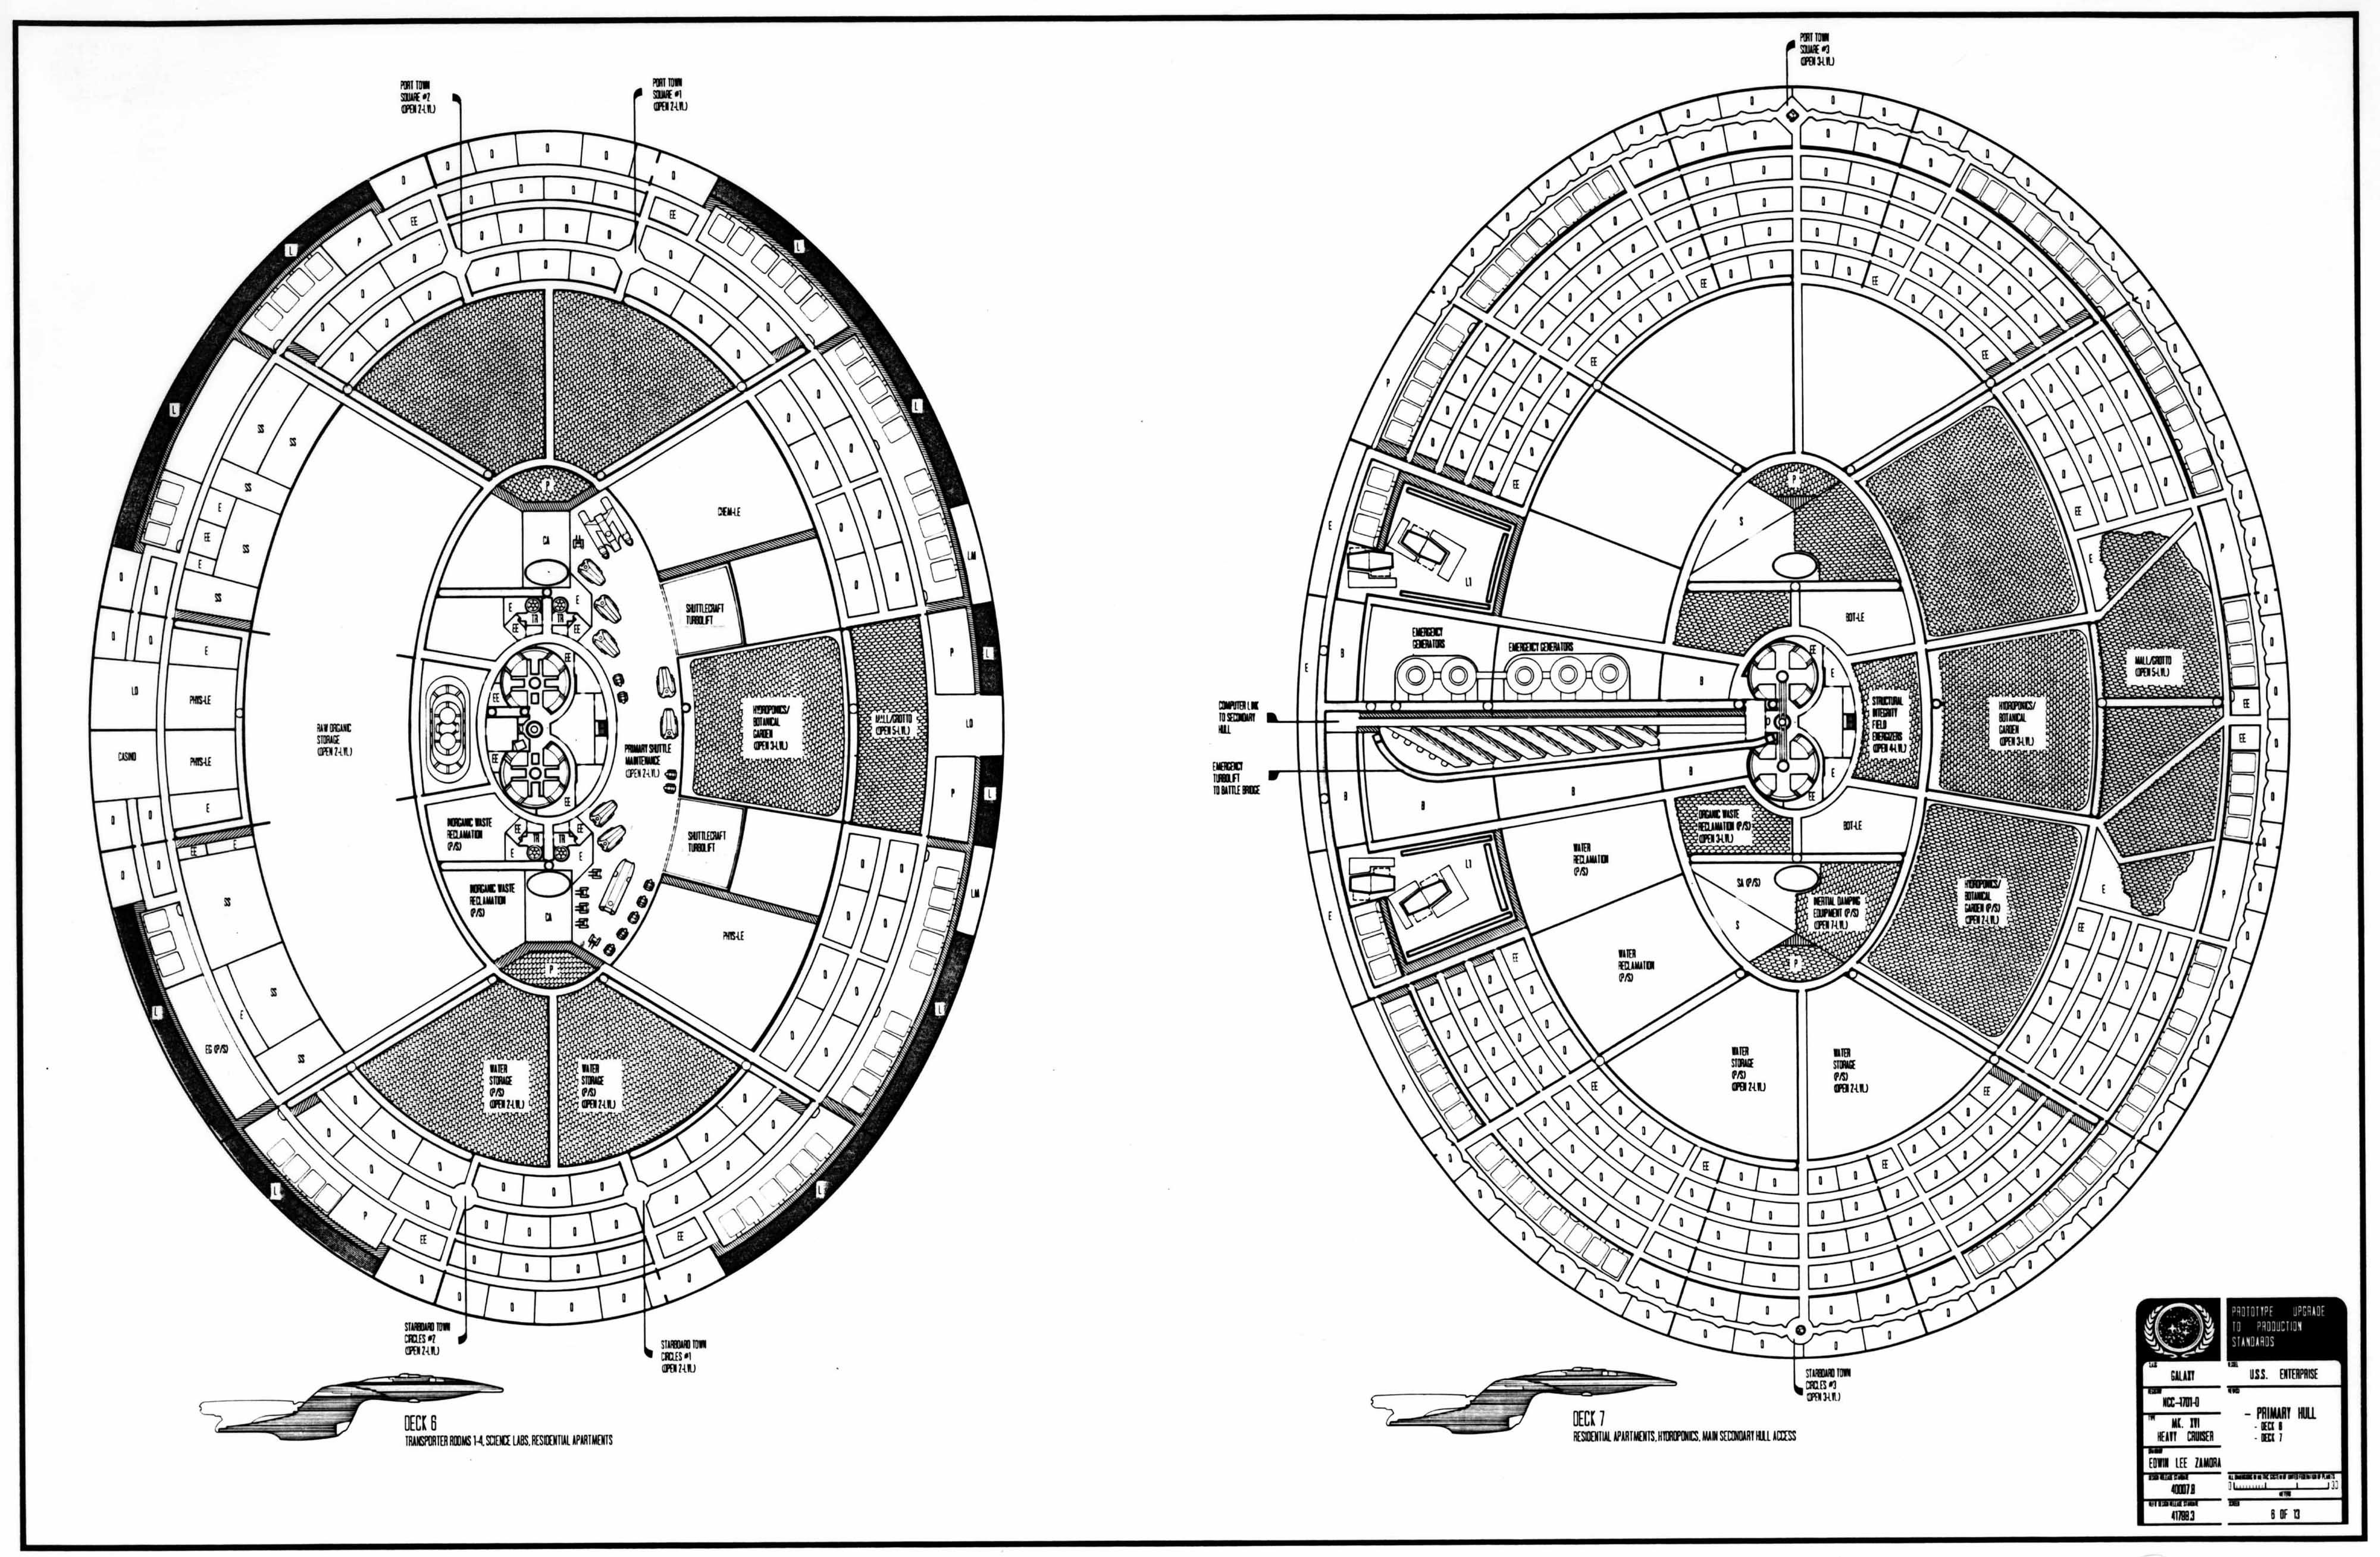 Schematic Of Decks 6 And 7 Of U S S Enterprise Ncc D